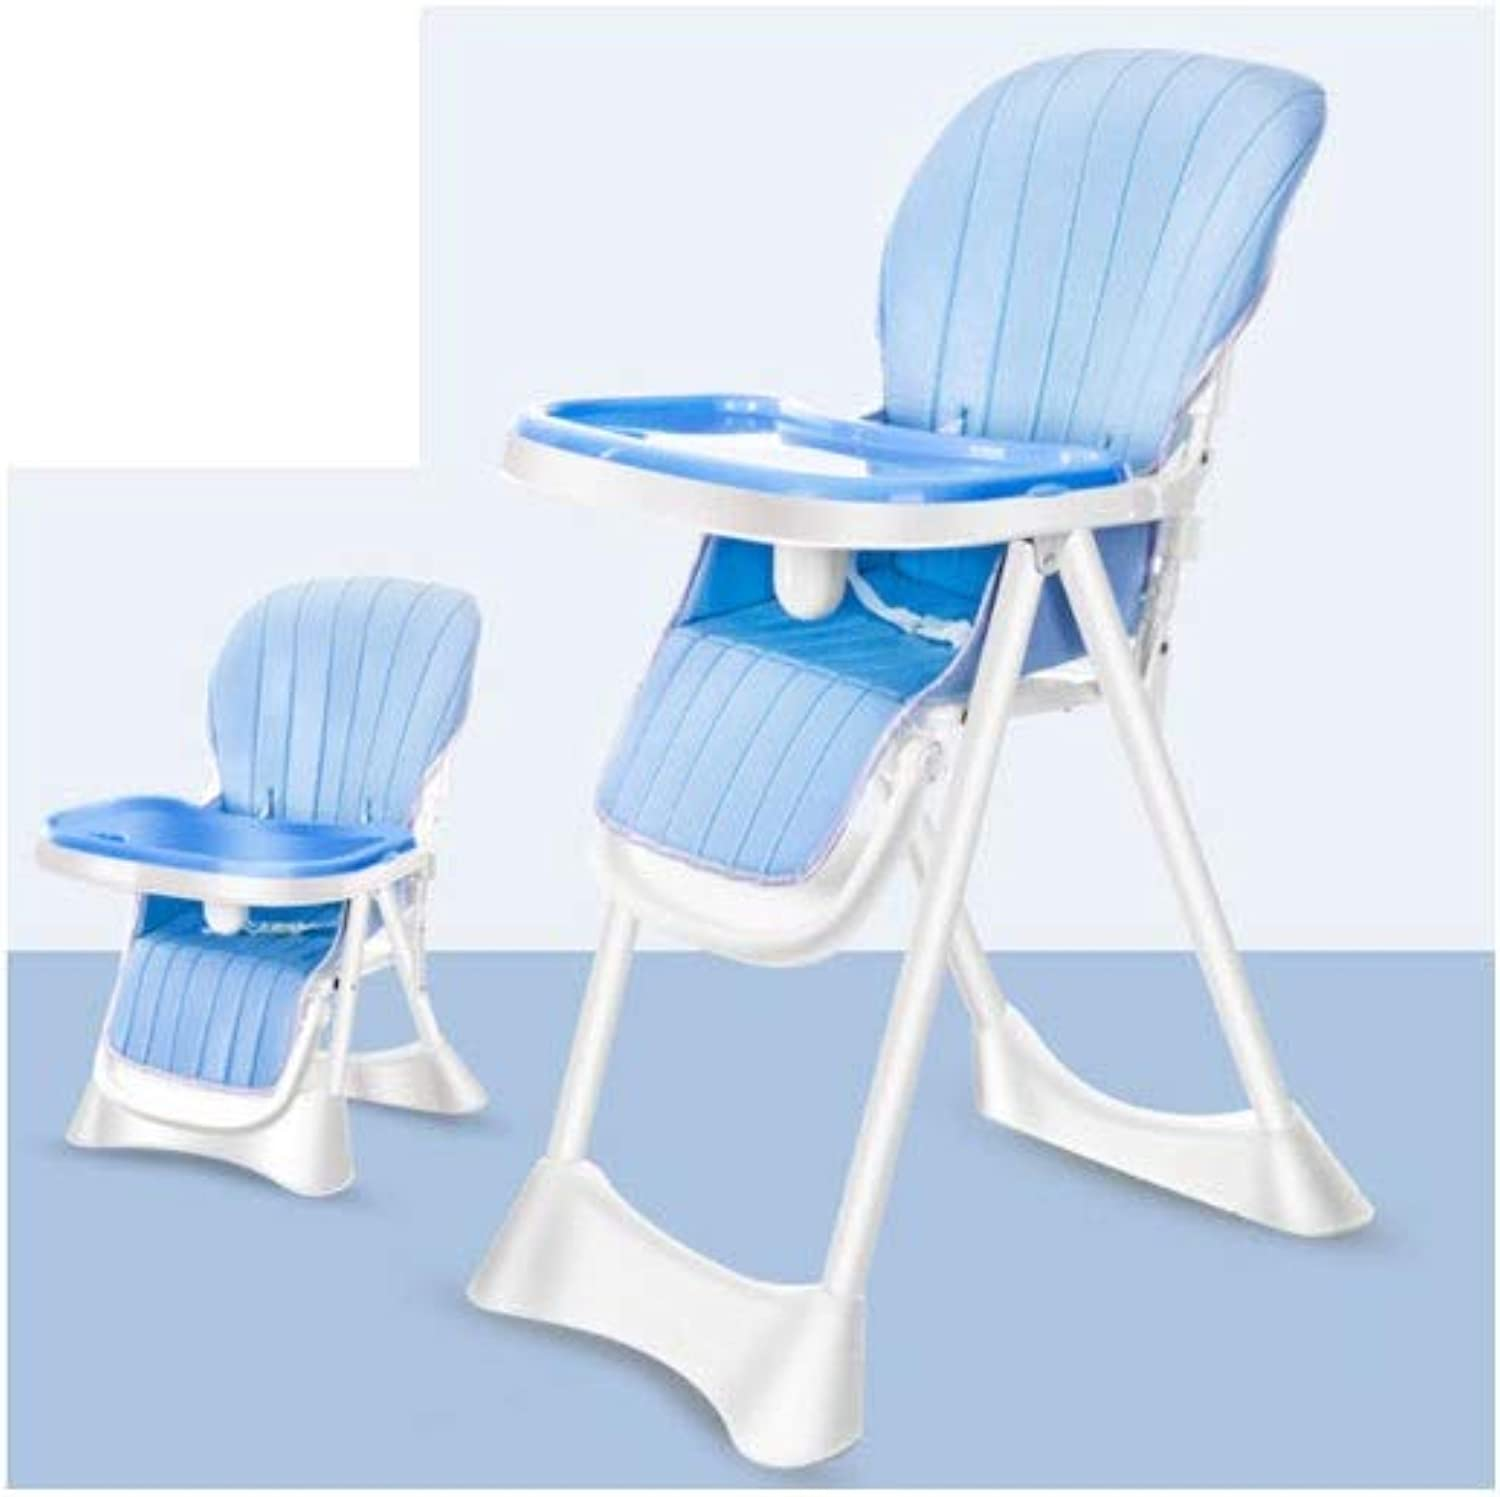 Baby Dining Chair Sleek Minimalist Creative Comfort Breathable Stable Portable Folding Baby Chair (color   bluee, Size   70  43  96cm)